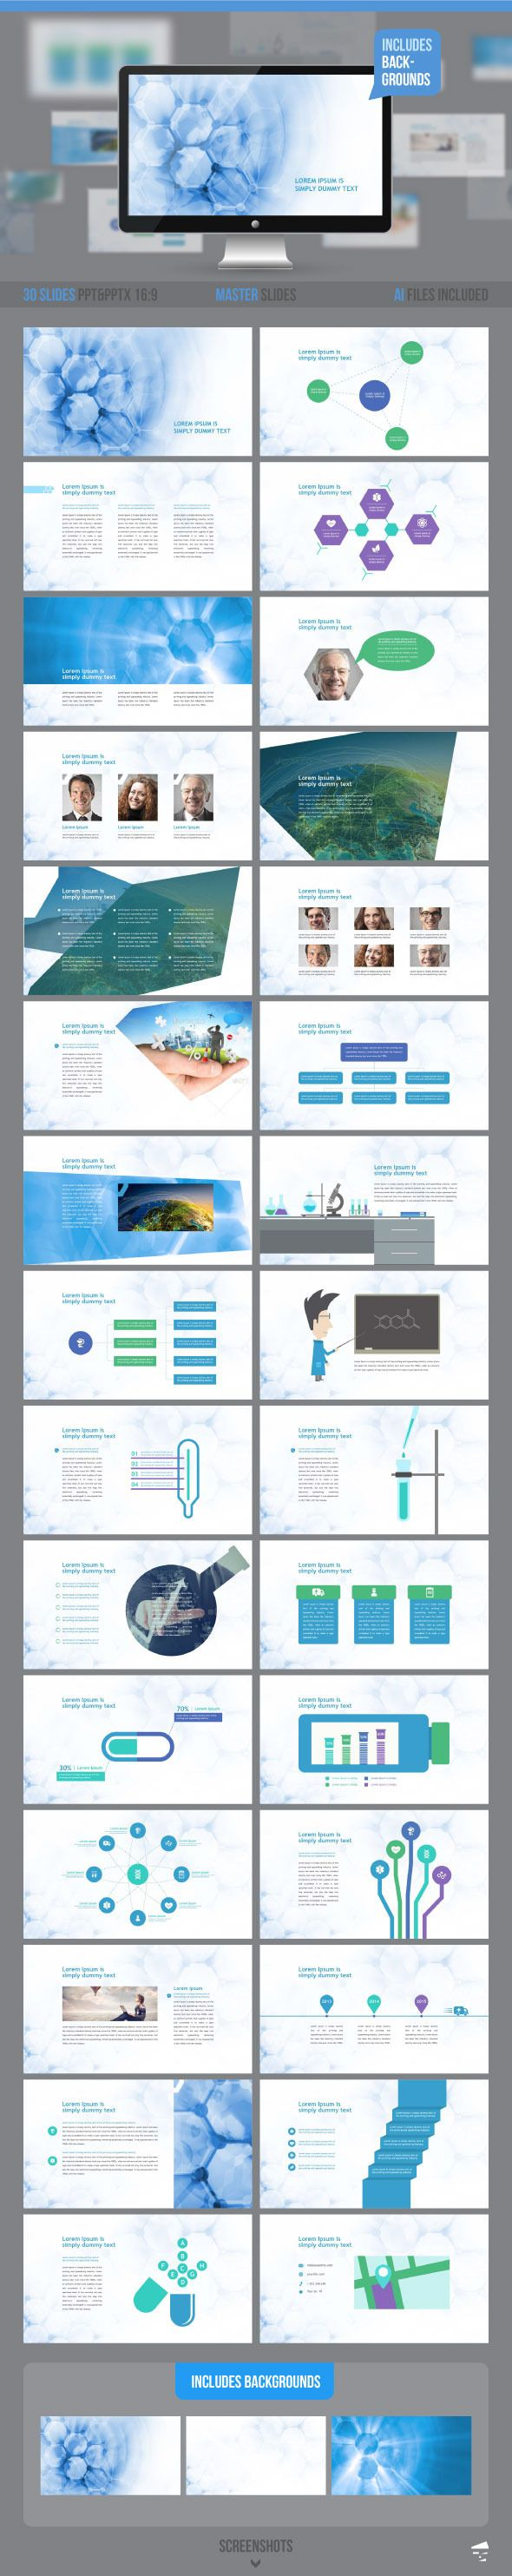 Medical professional presentation template design download http medical professional presentation template design download httpgraphicriveritemmedical professional presentation 11816538refksioks toneelgroepblik Image collections